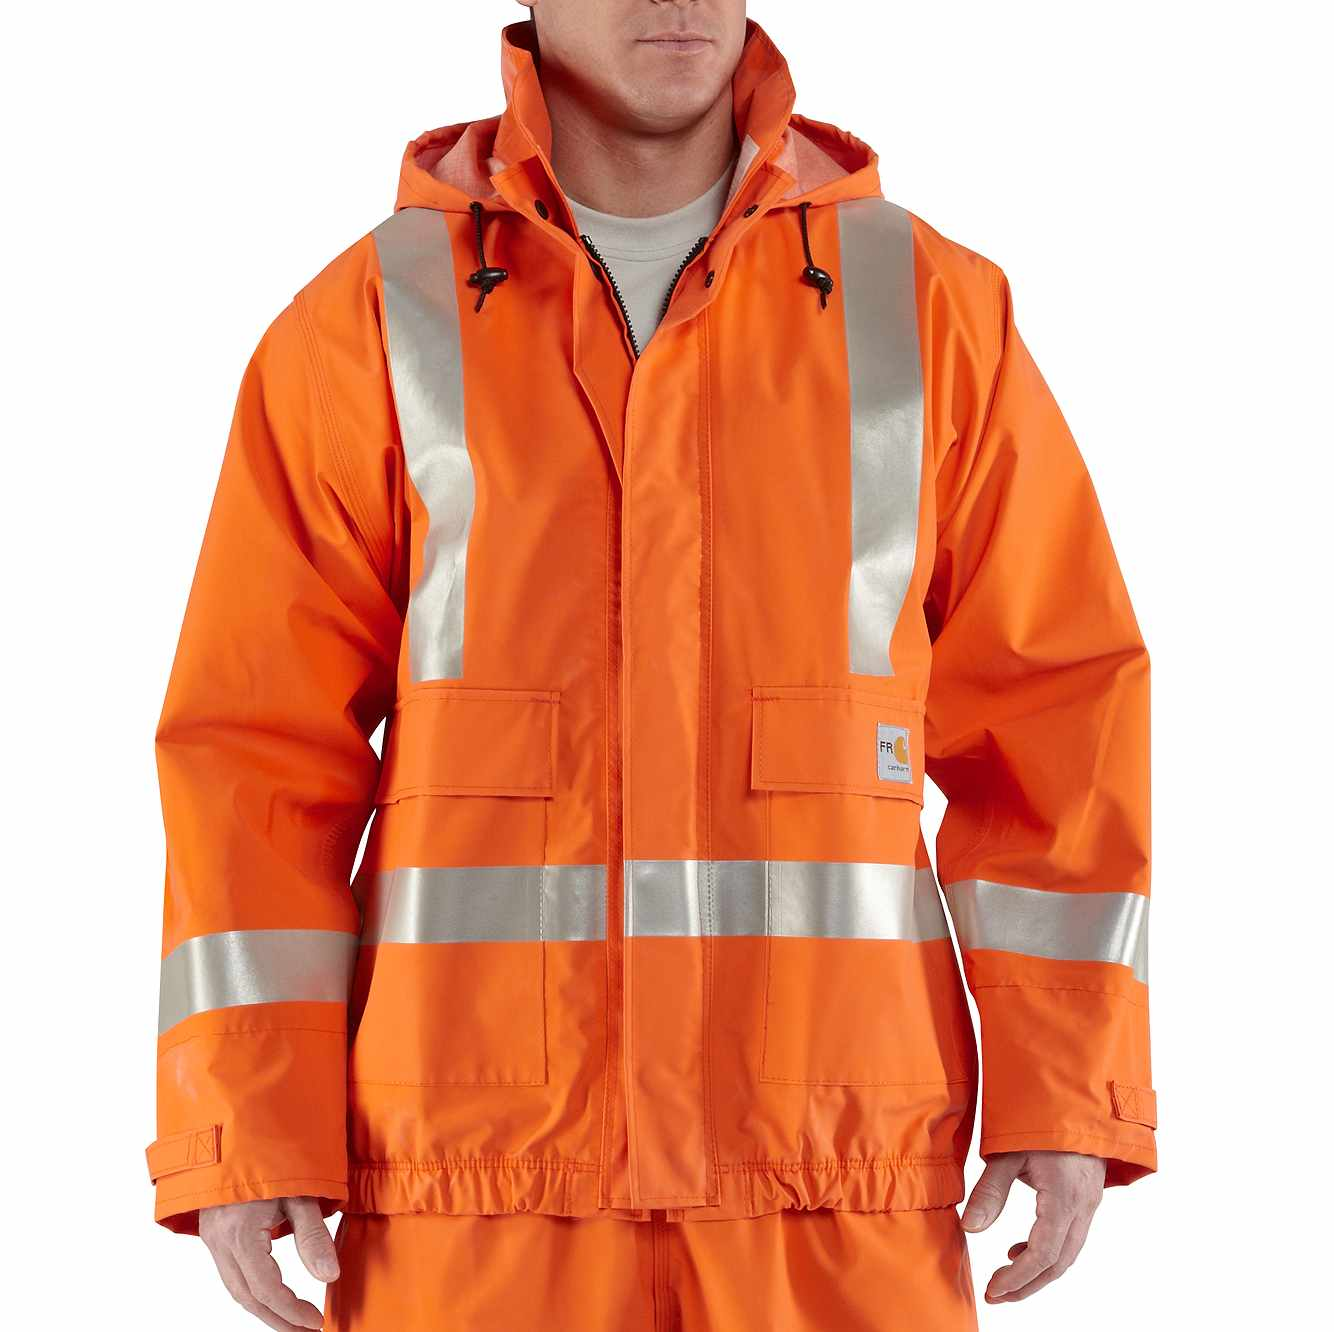 Picture of Flame-Resistant Rain Jacket in Bold Orange